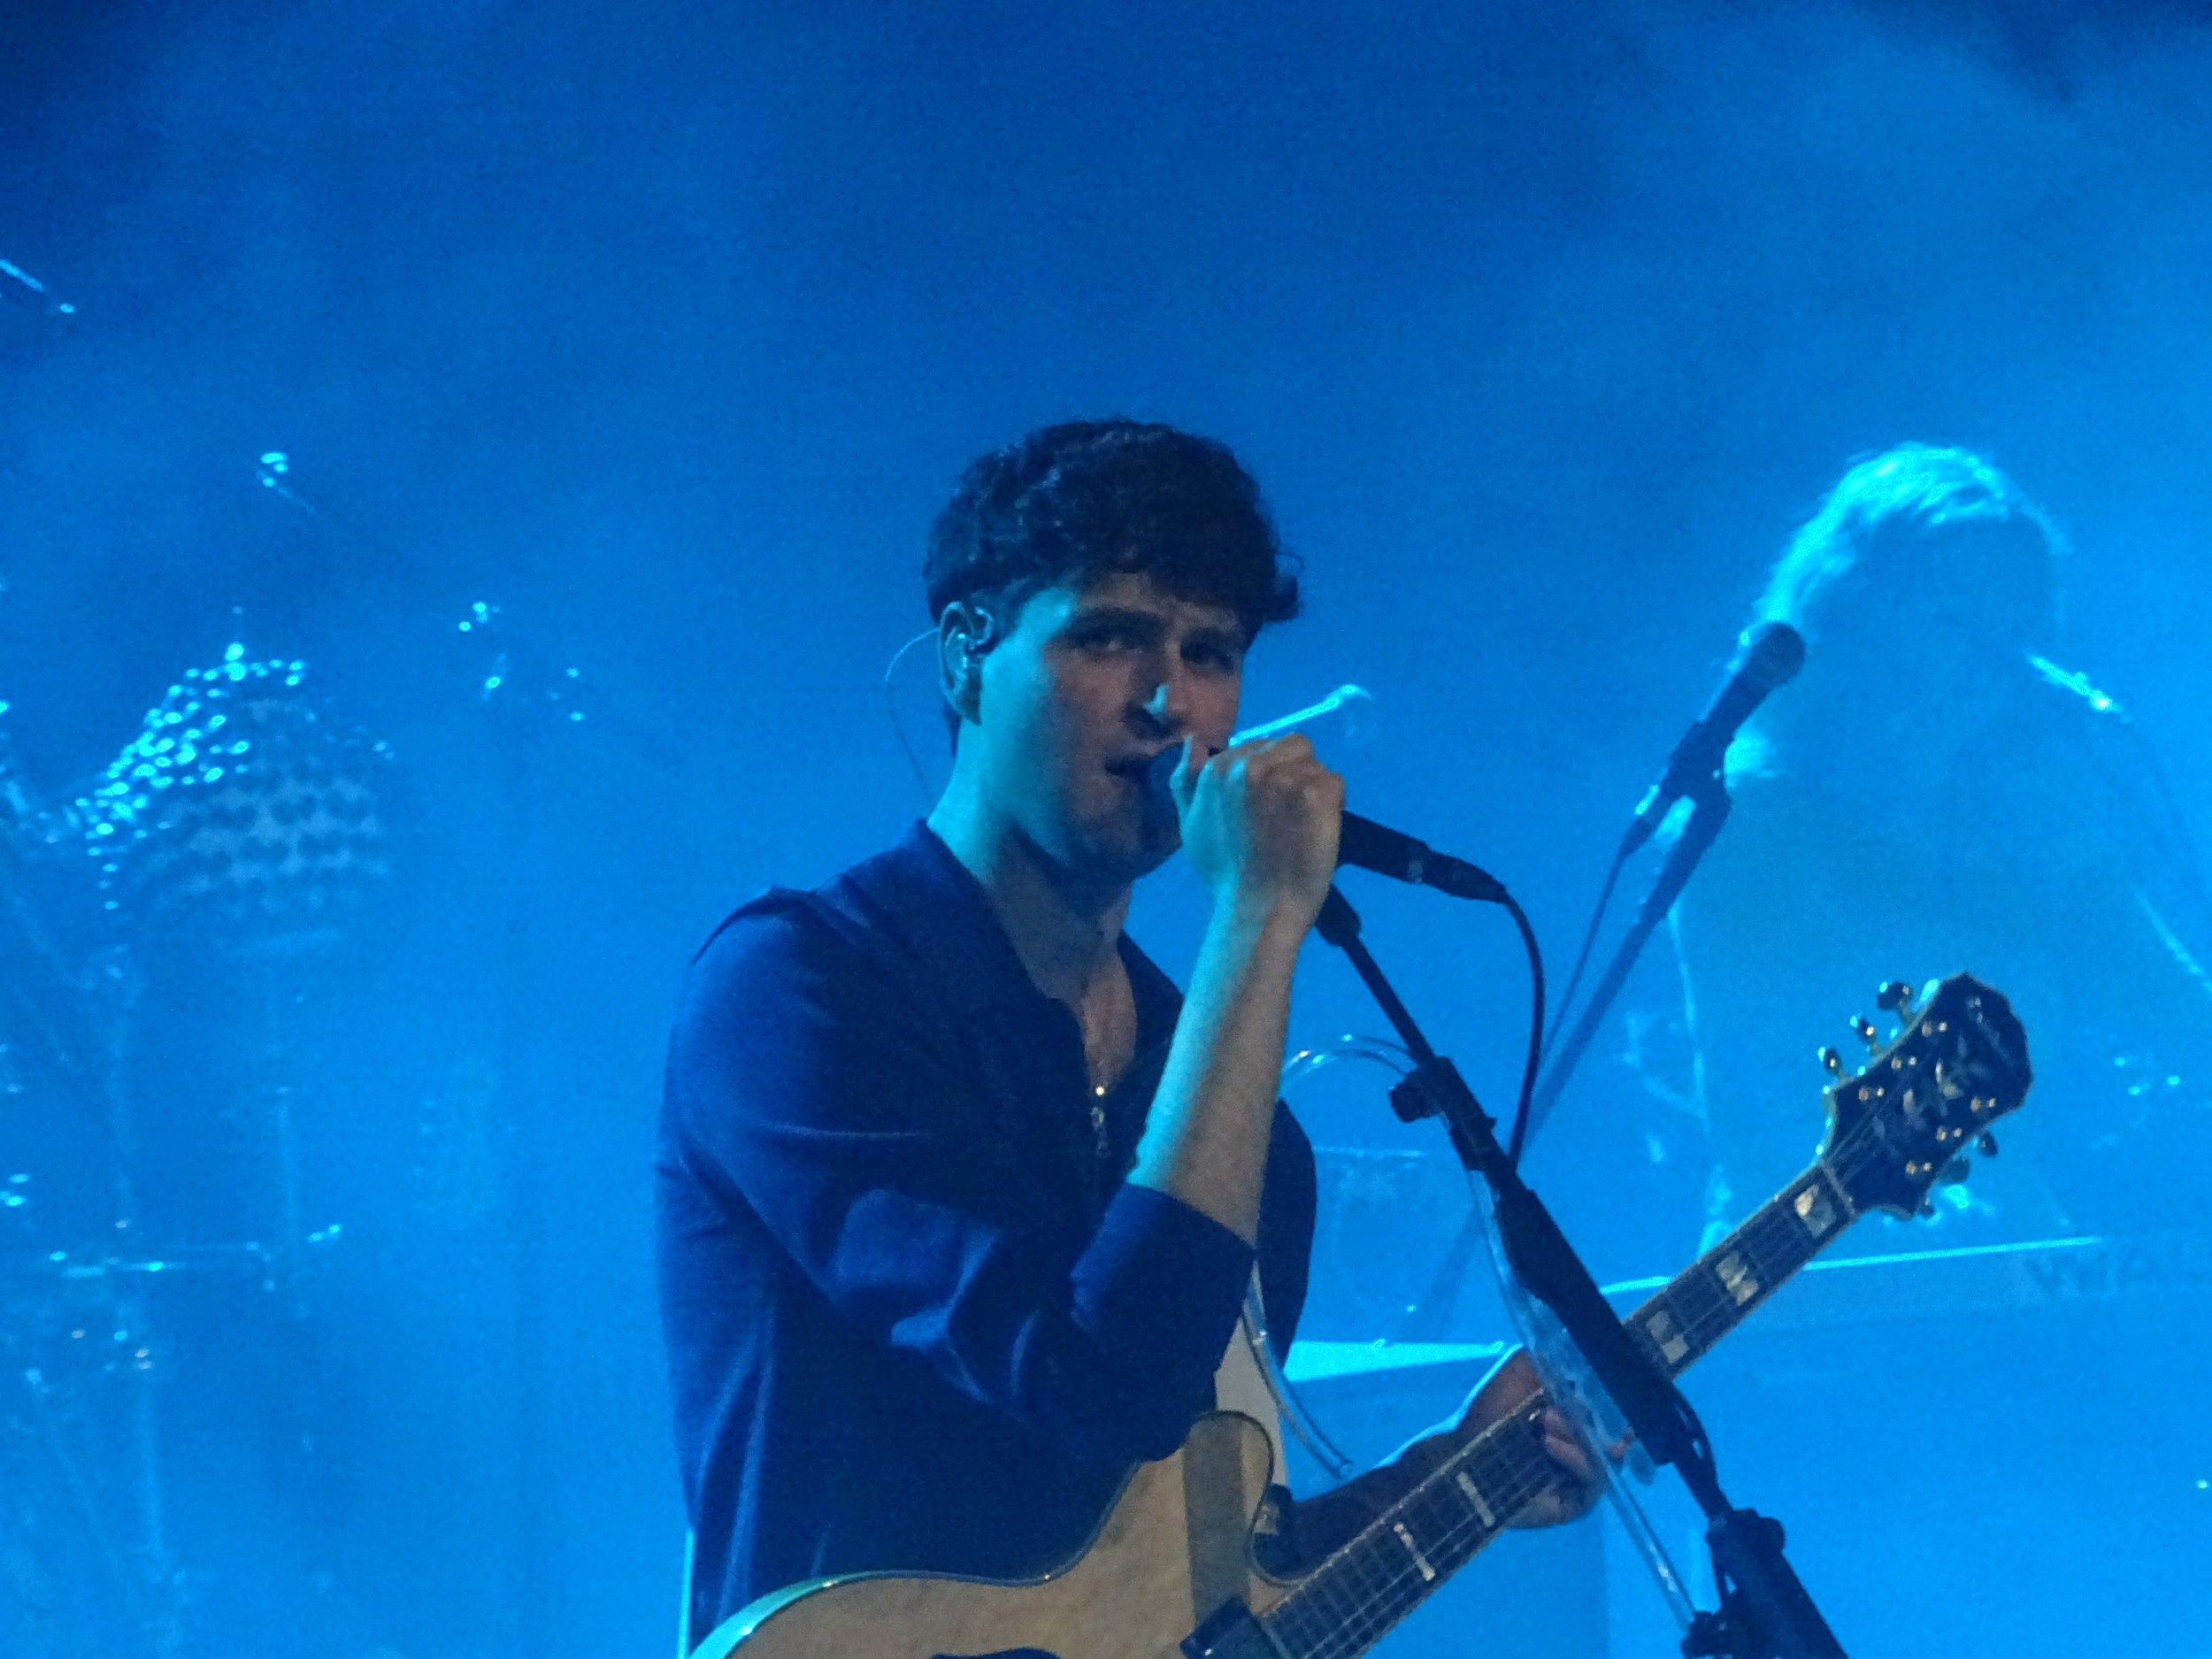 VAMPIRE WEEKENDEarth [21/03/19] - For their first London performance in six years, Vampire Weekend bring prog rock, indie pop and a dose of their own quirky style to a very special show at Hackney's Earth Theatre.